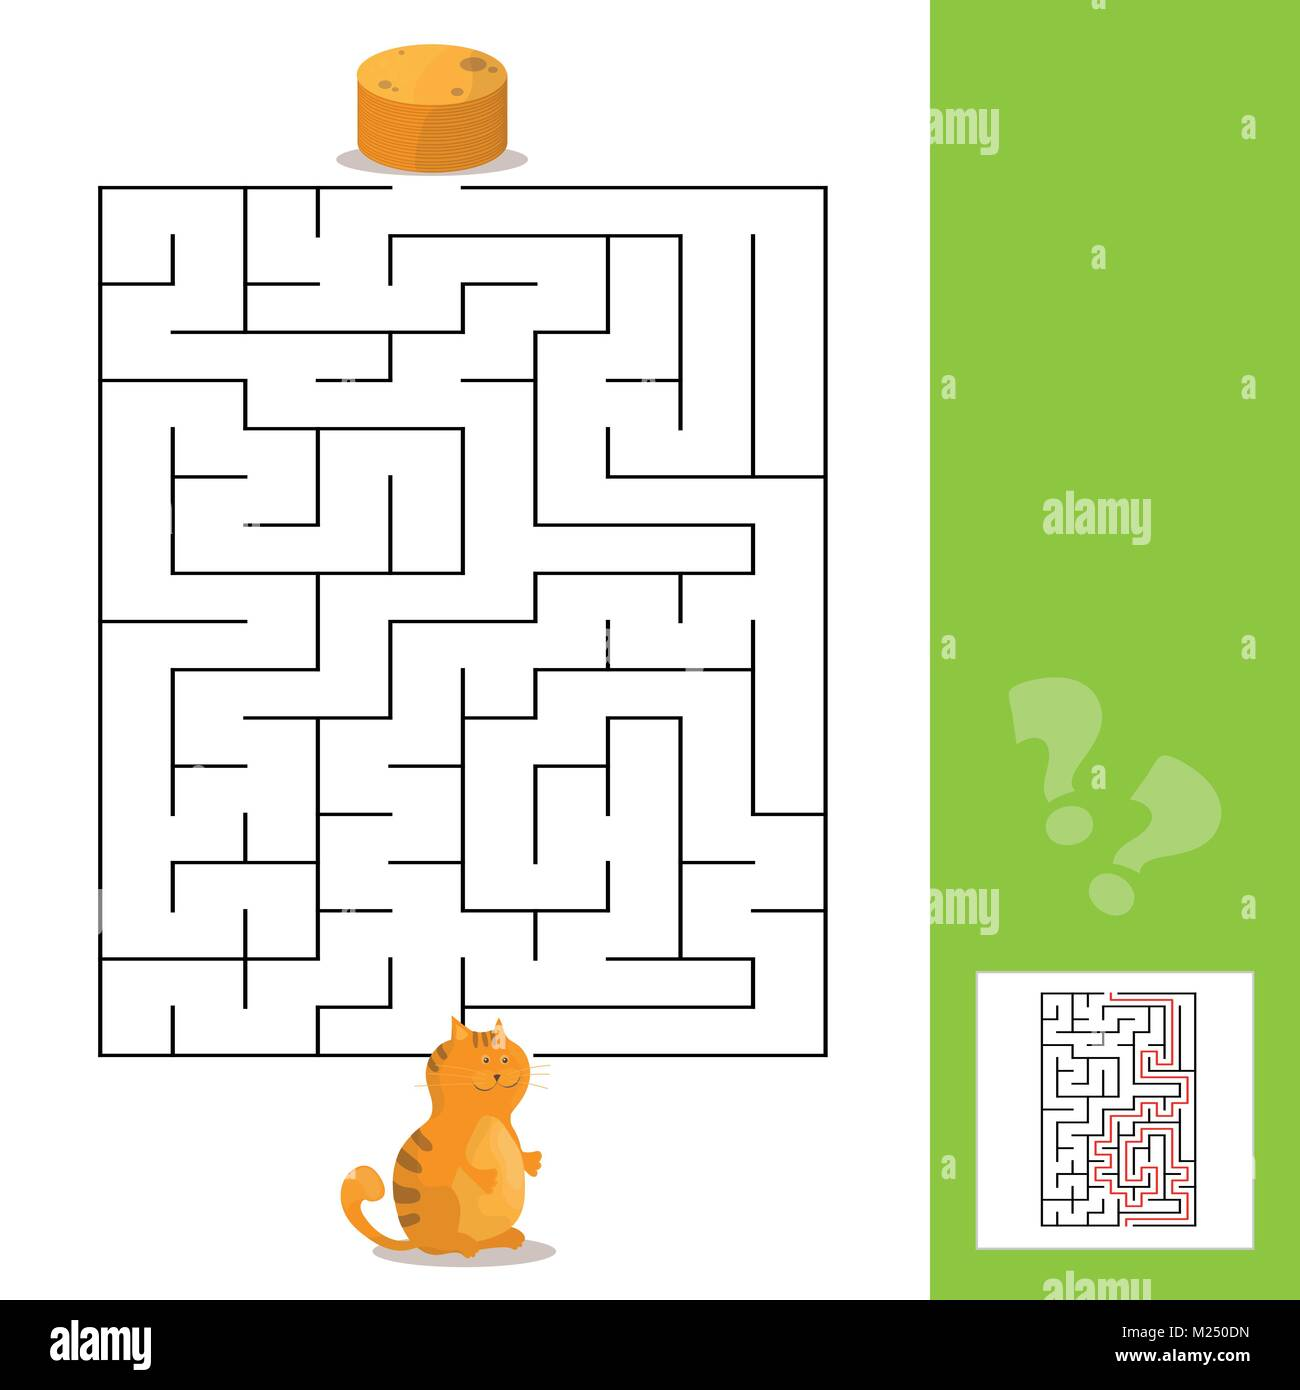 Cartoon Of Paths Or Maze Puzzle Activity Game With Kitten And Stock